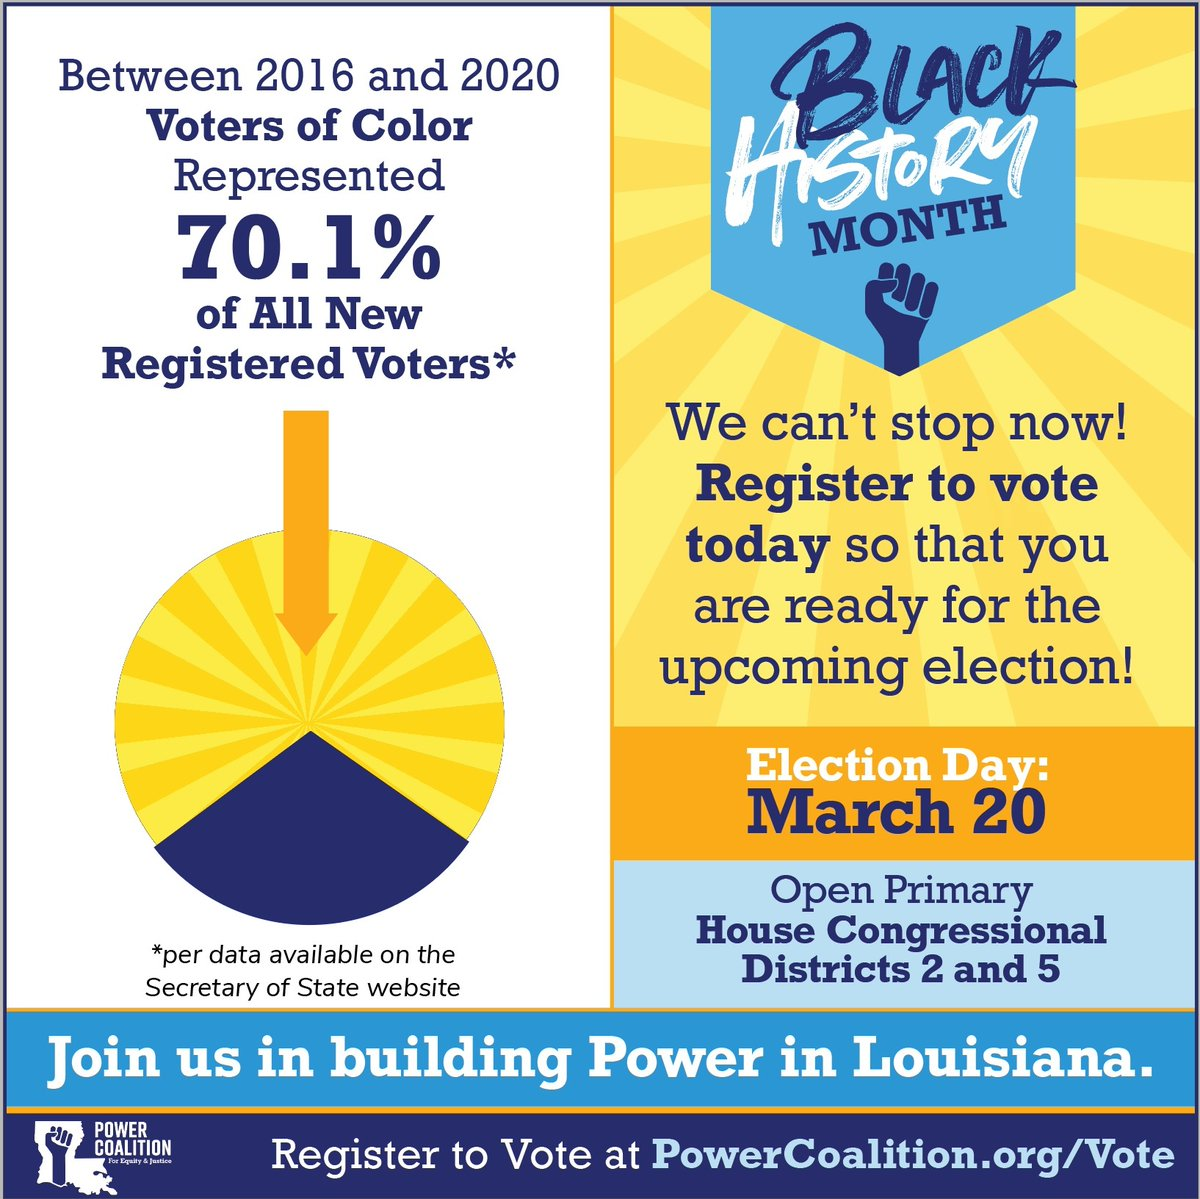 Did you know over the past 4 years, voters of color represent 70% of new registered voters? Today is the last day to register to vote online for the March 20th election! Visit  and make sure you are registered today!